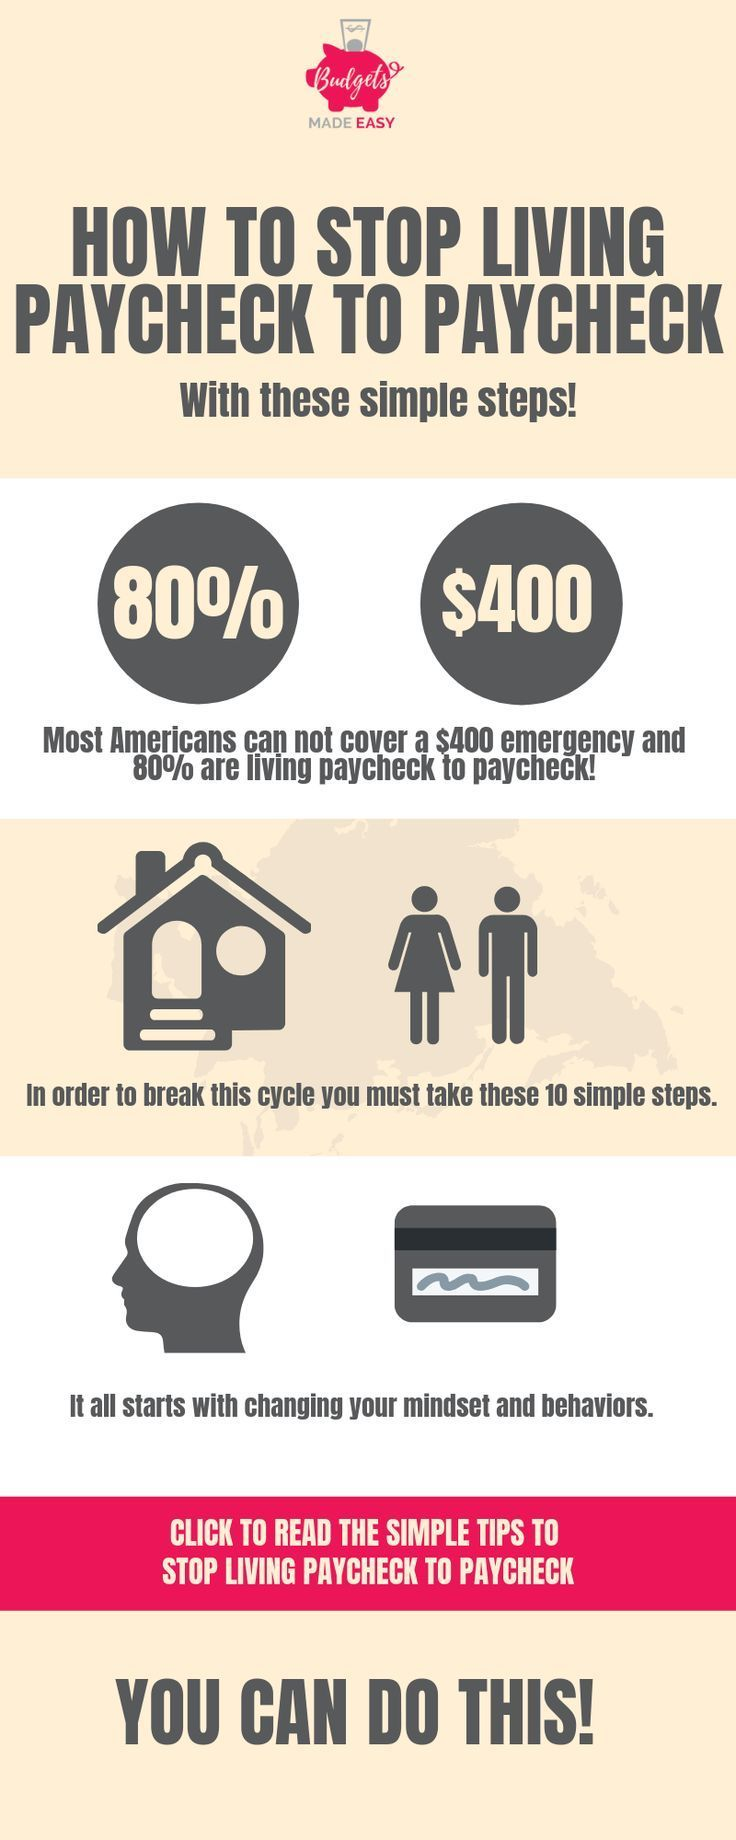 10 Steps to Stop Living Paycheck to Paycheck - #Living #Paycheck #saving #Steps ...